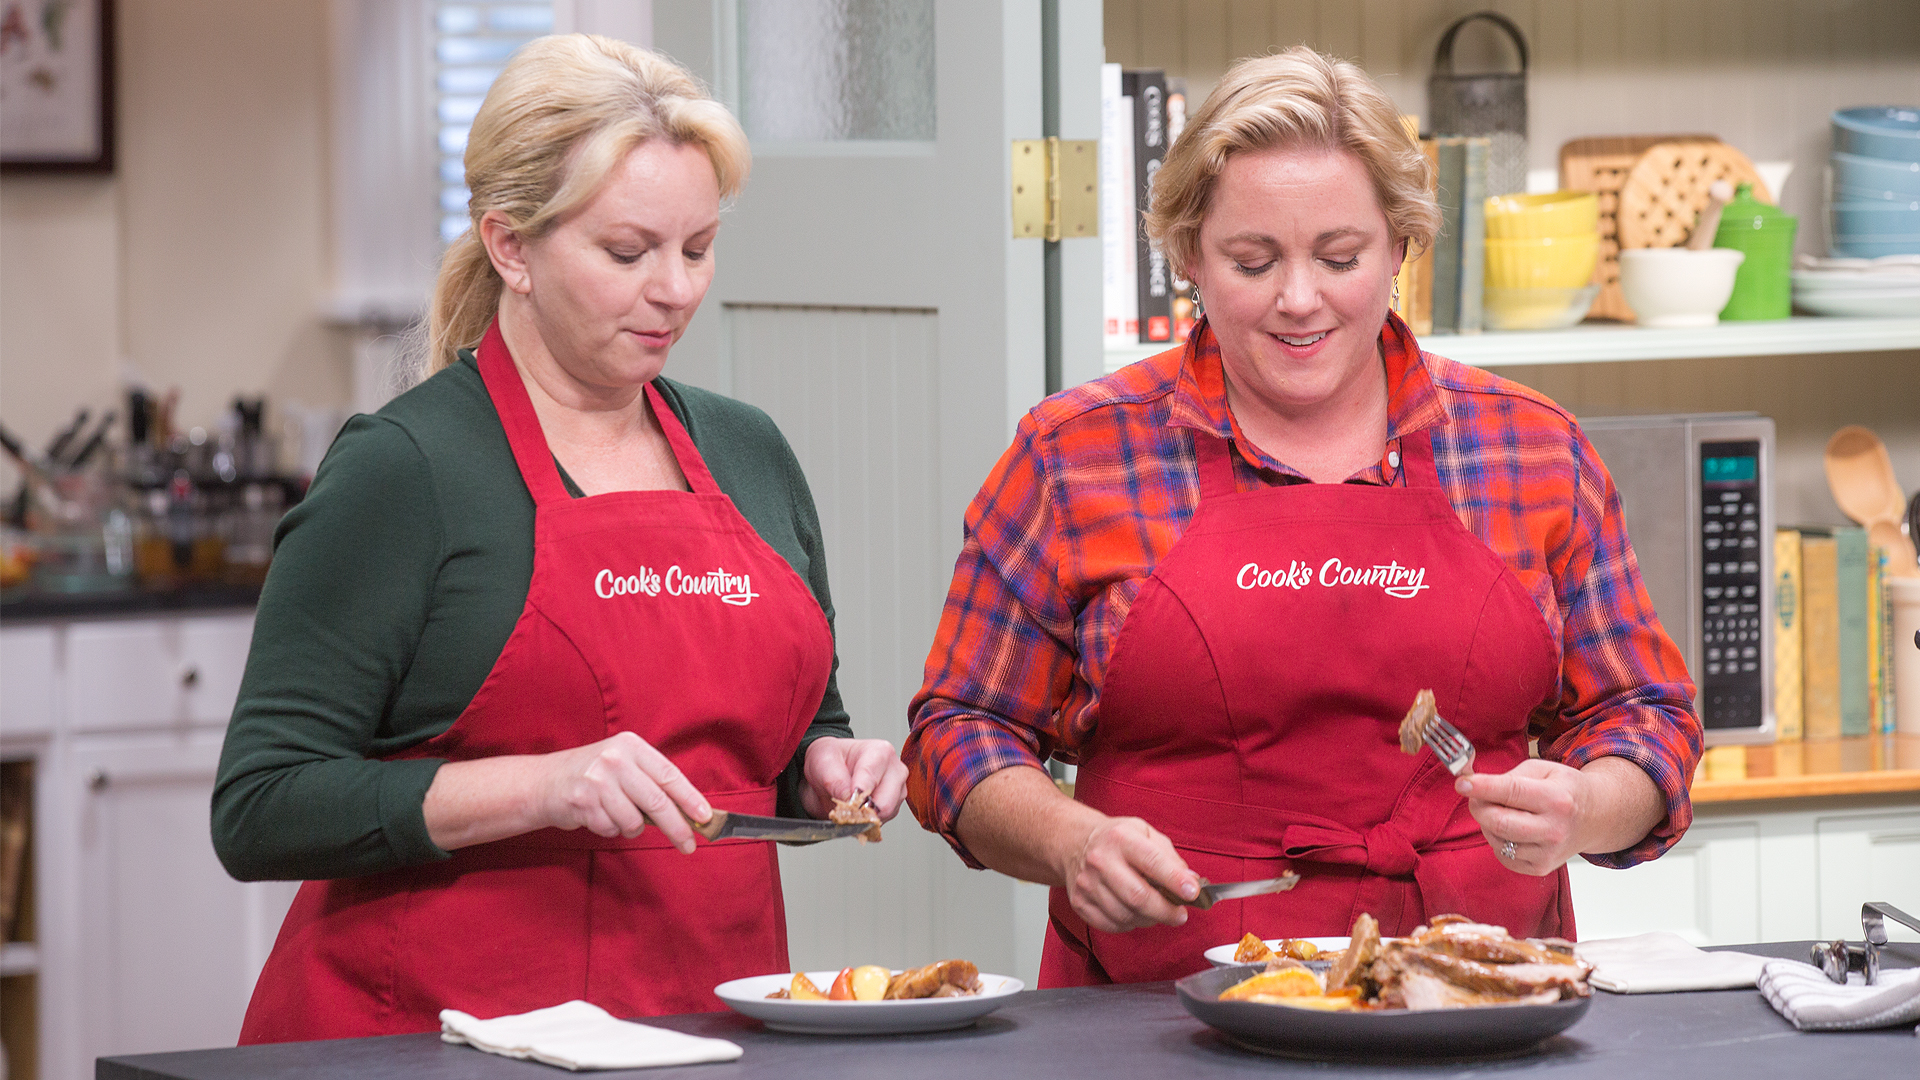 incredible Www Cooks Country Com Part - 1: Cooku0027s Country